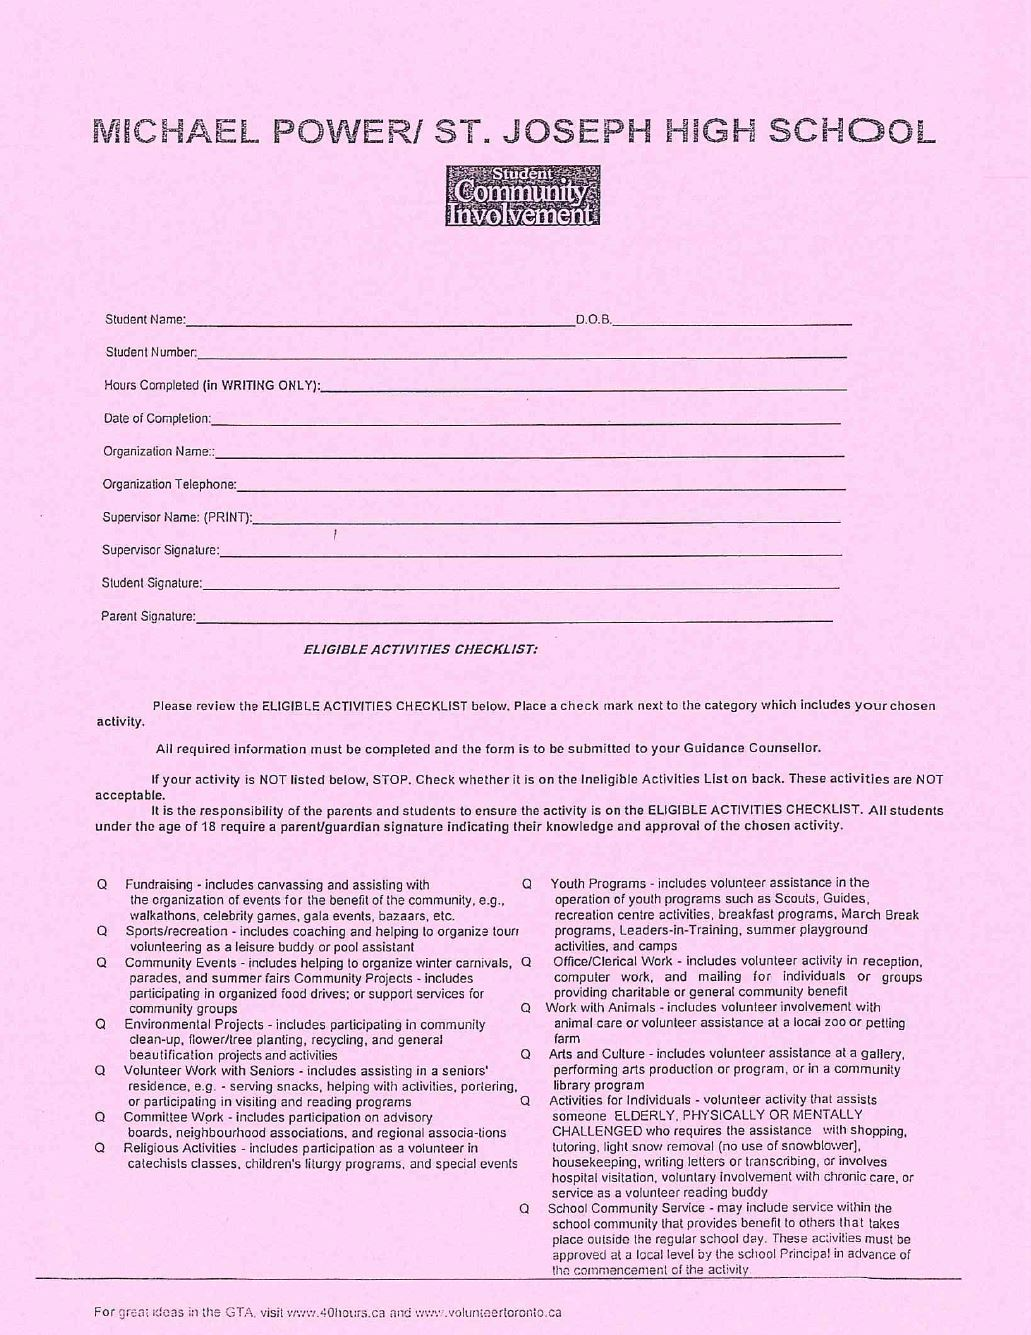 MPSJ Community Involvement Forms - Pink pg1.JPG